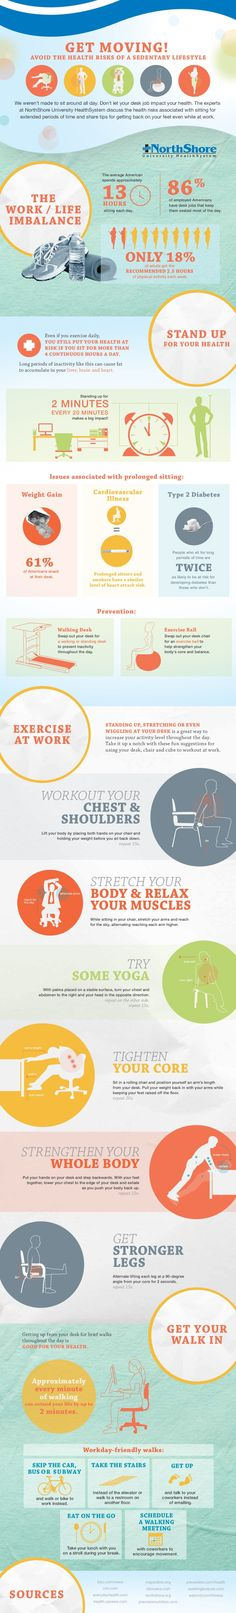 Get Moving! Avoid the Health Risks of a Sedentary Lifestyle